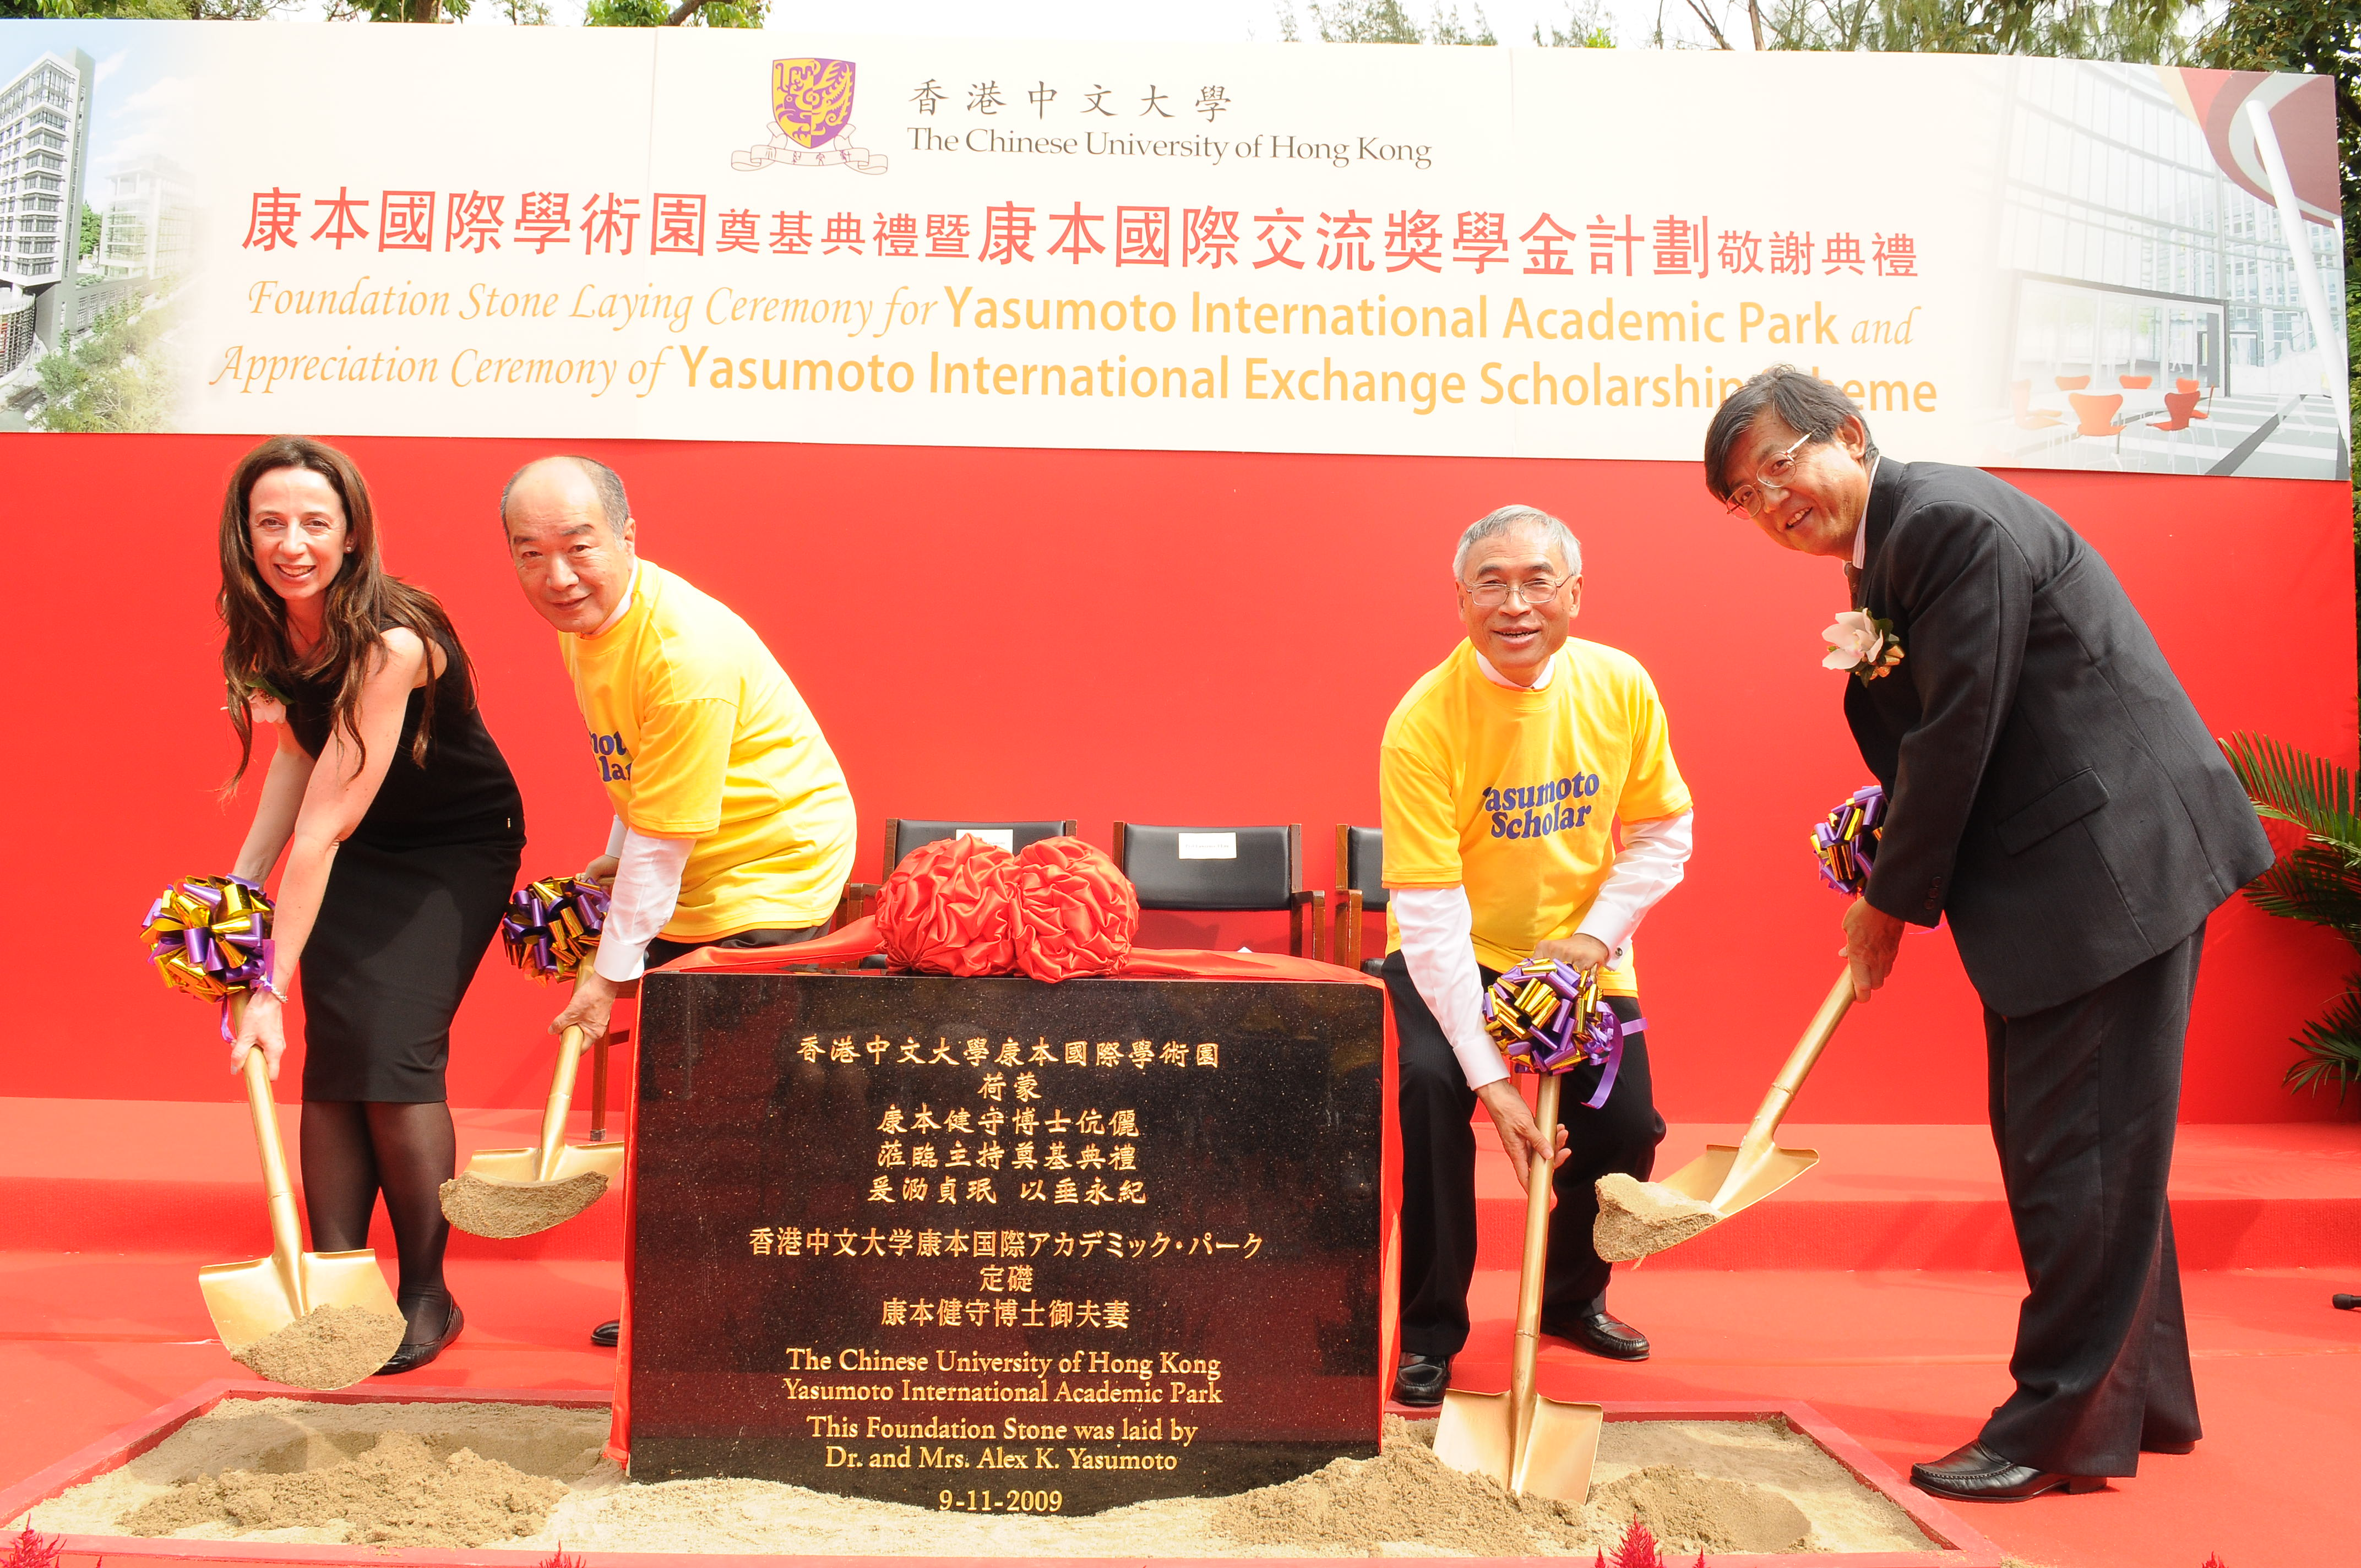 The foundation stone laying ceremony for the Yasumoto International Academic Park. From right: Mr. Shigekazu Sato, Consul-General of Japan in Hong Kong; Prof. Lawrence J. Lau, Vice-Chancellor, CUHK; and Dr. and Mrs. Yasumoto